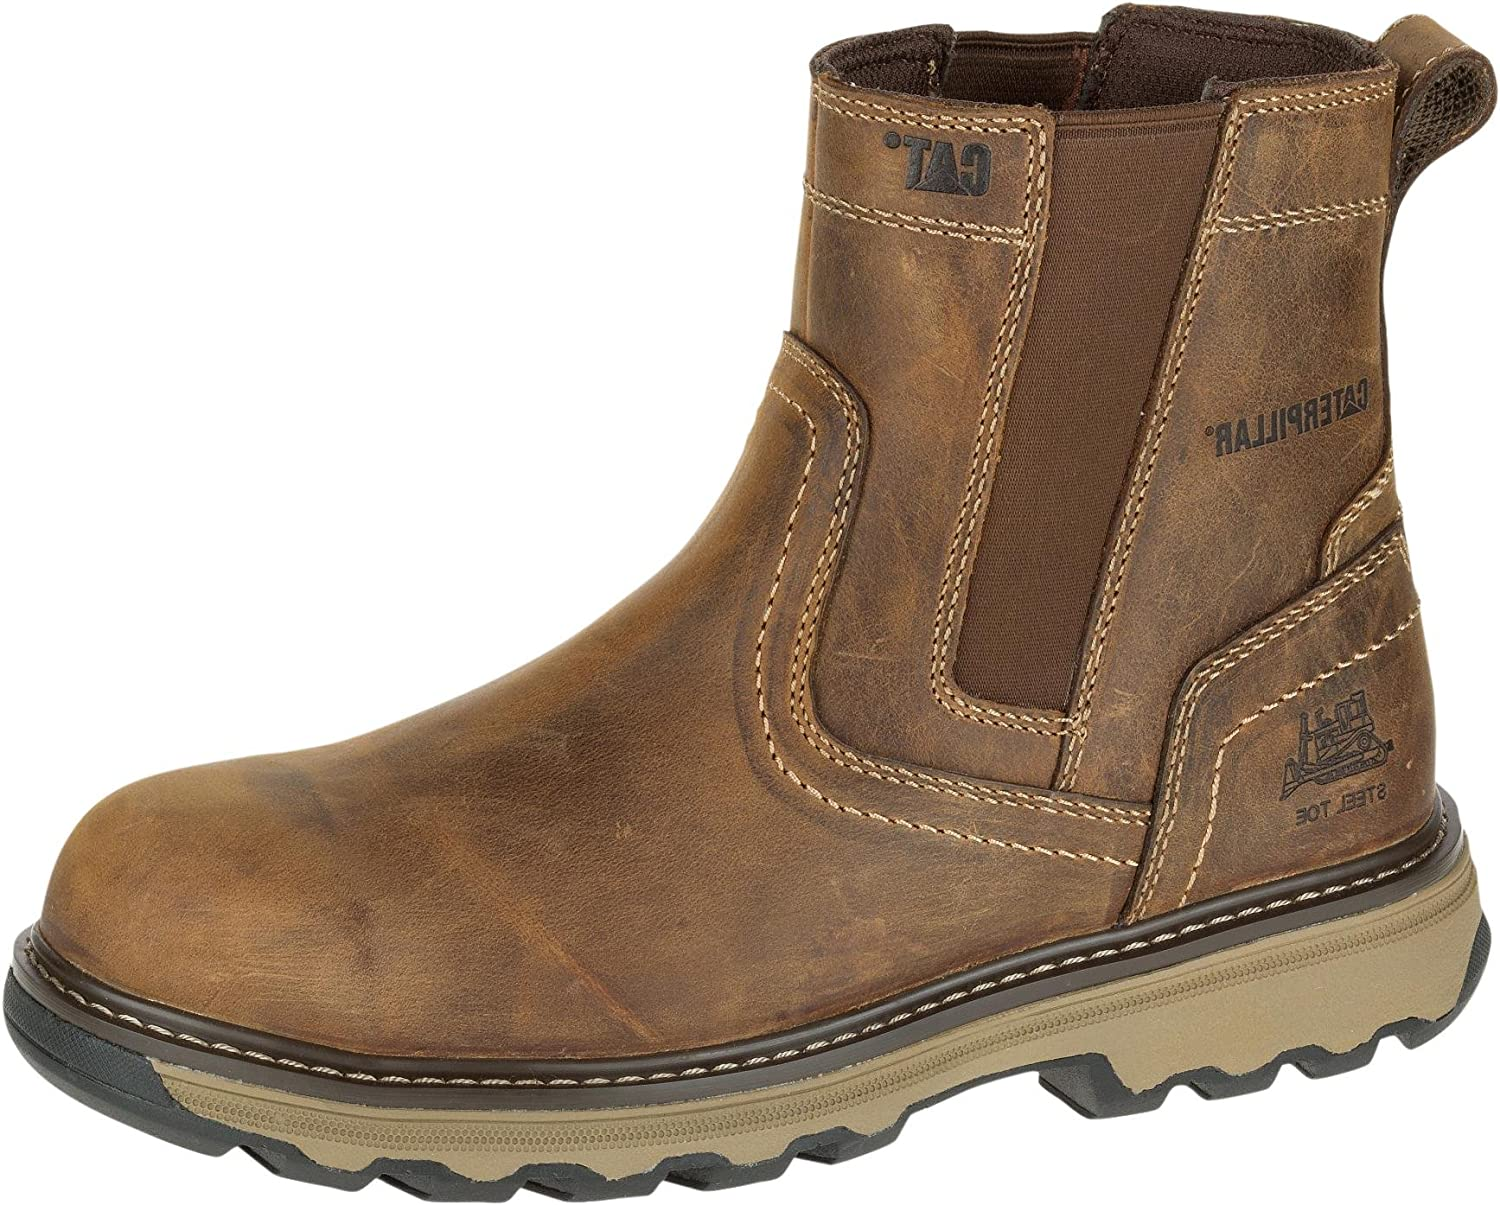 CAT Workwear Mens Pelton Lightweight Leather S1P Safety Deal Boots